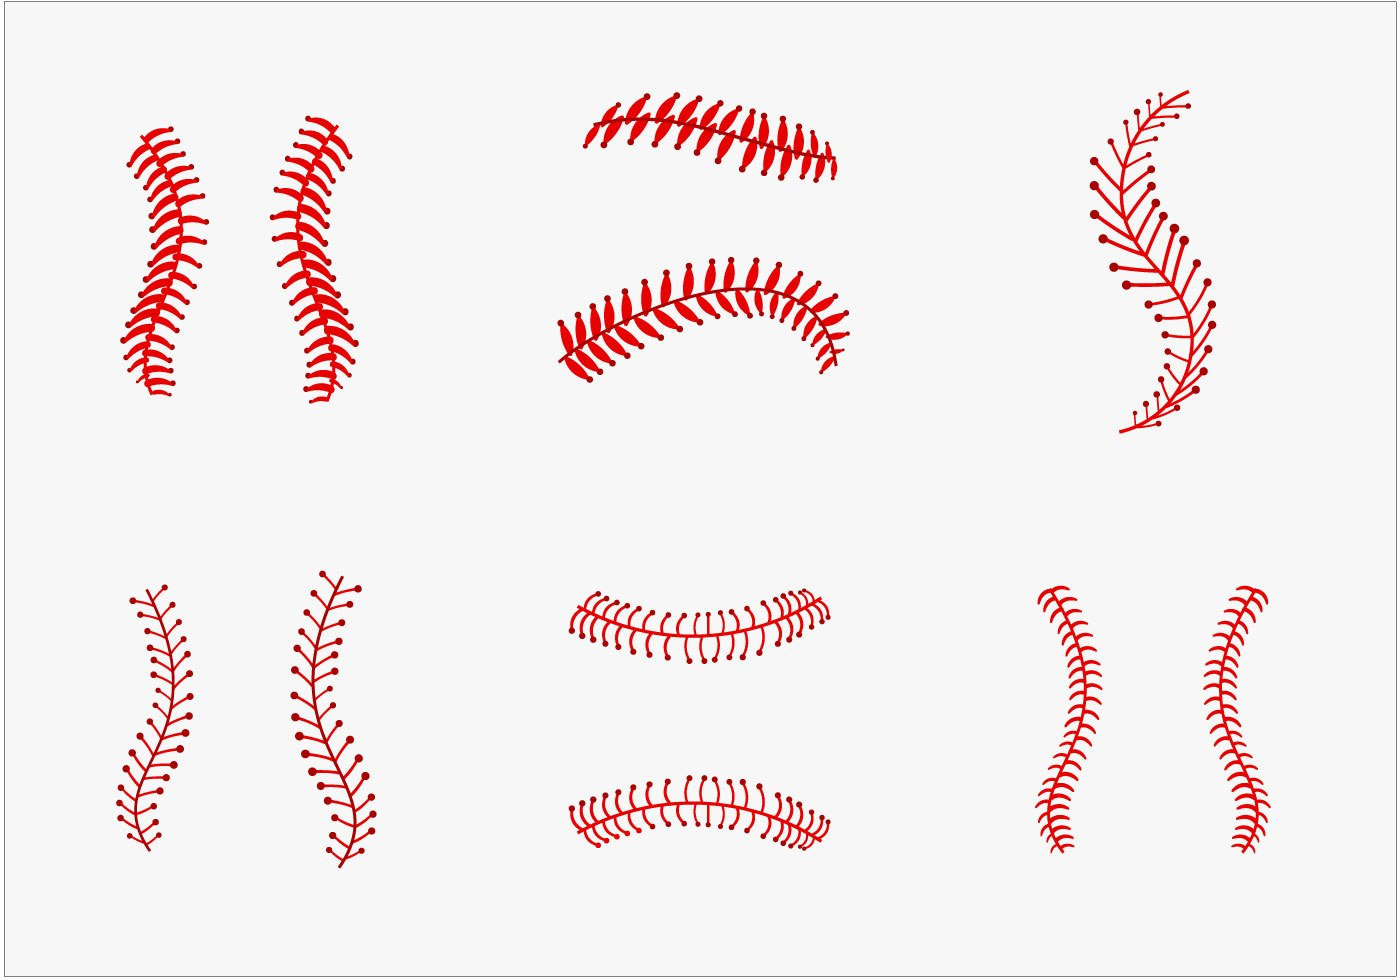 Softball laces clipart 6 » Clipart Portal.